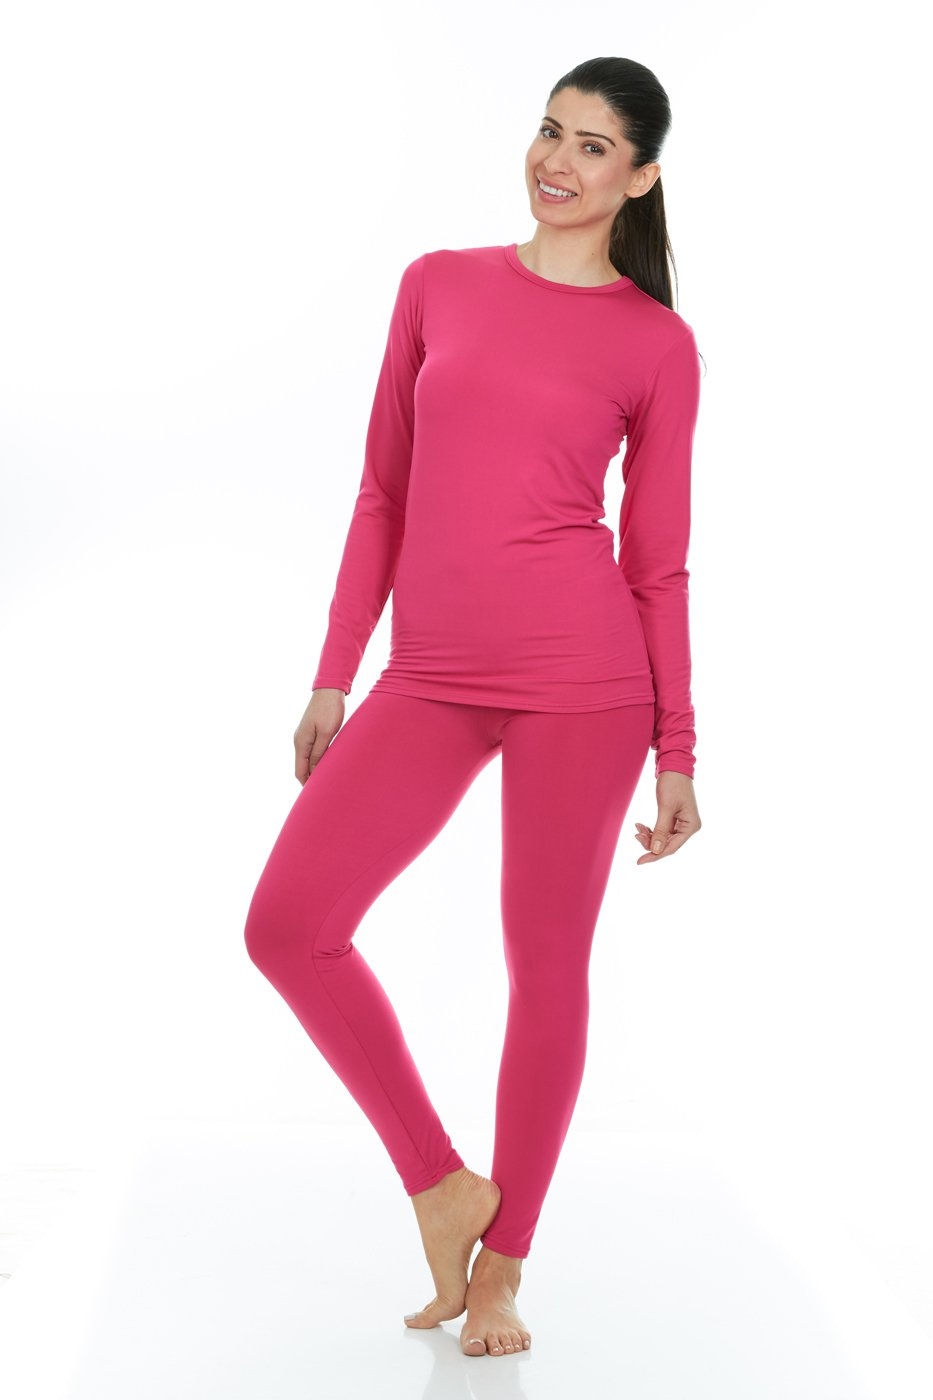 Thermajane Women's Ultra Soft Thermal Underwear Long Johns Set with Fleece Lined (XX-Small, Pink) by Thermajane